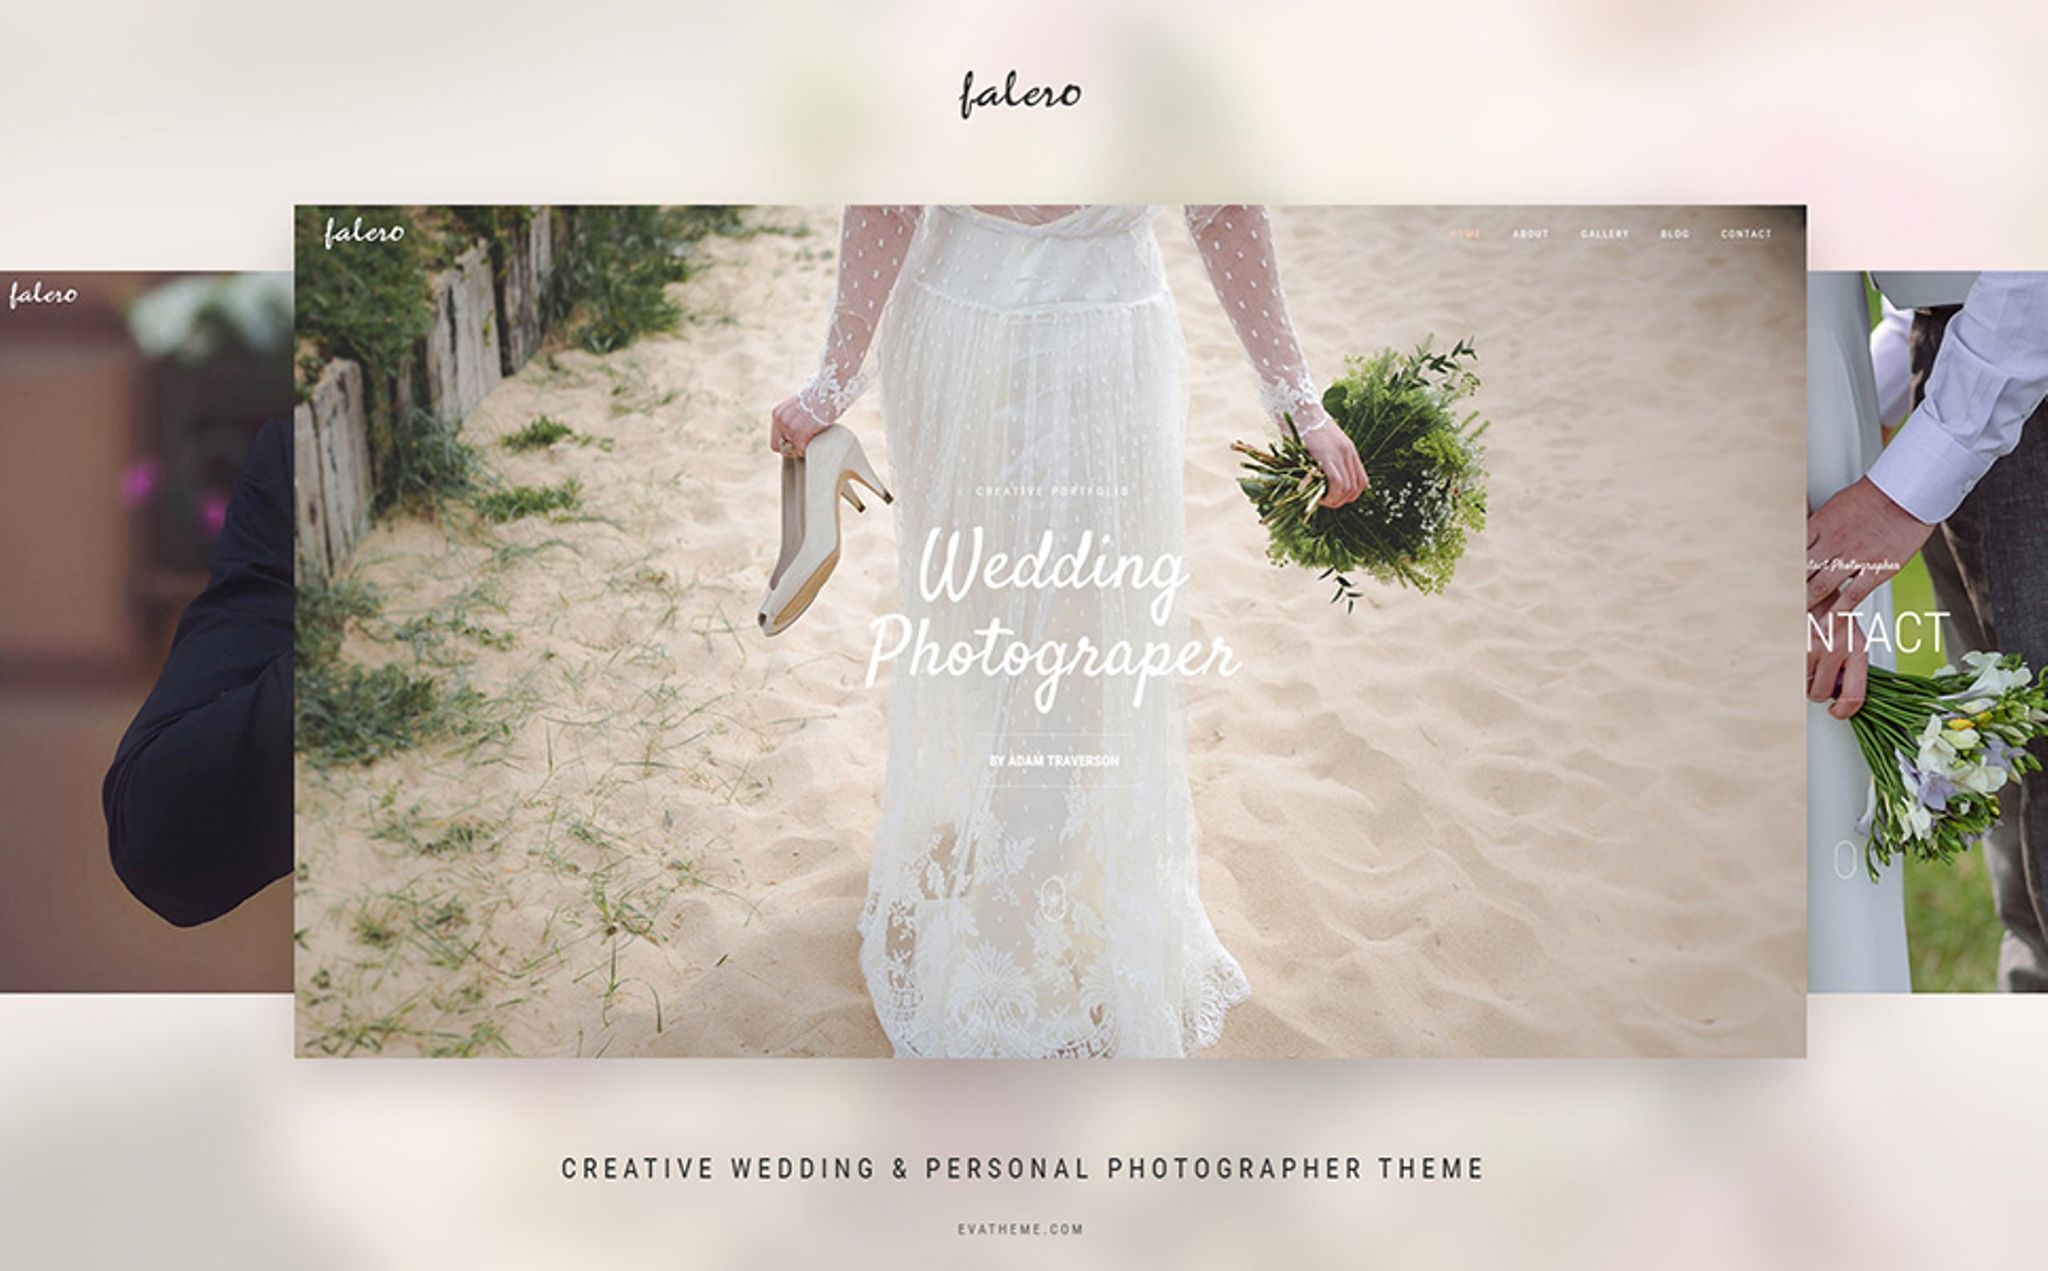 Falero Wedding Photographer Theme WordPress Theme